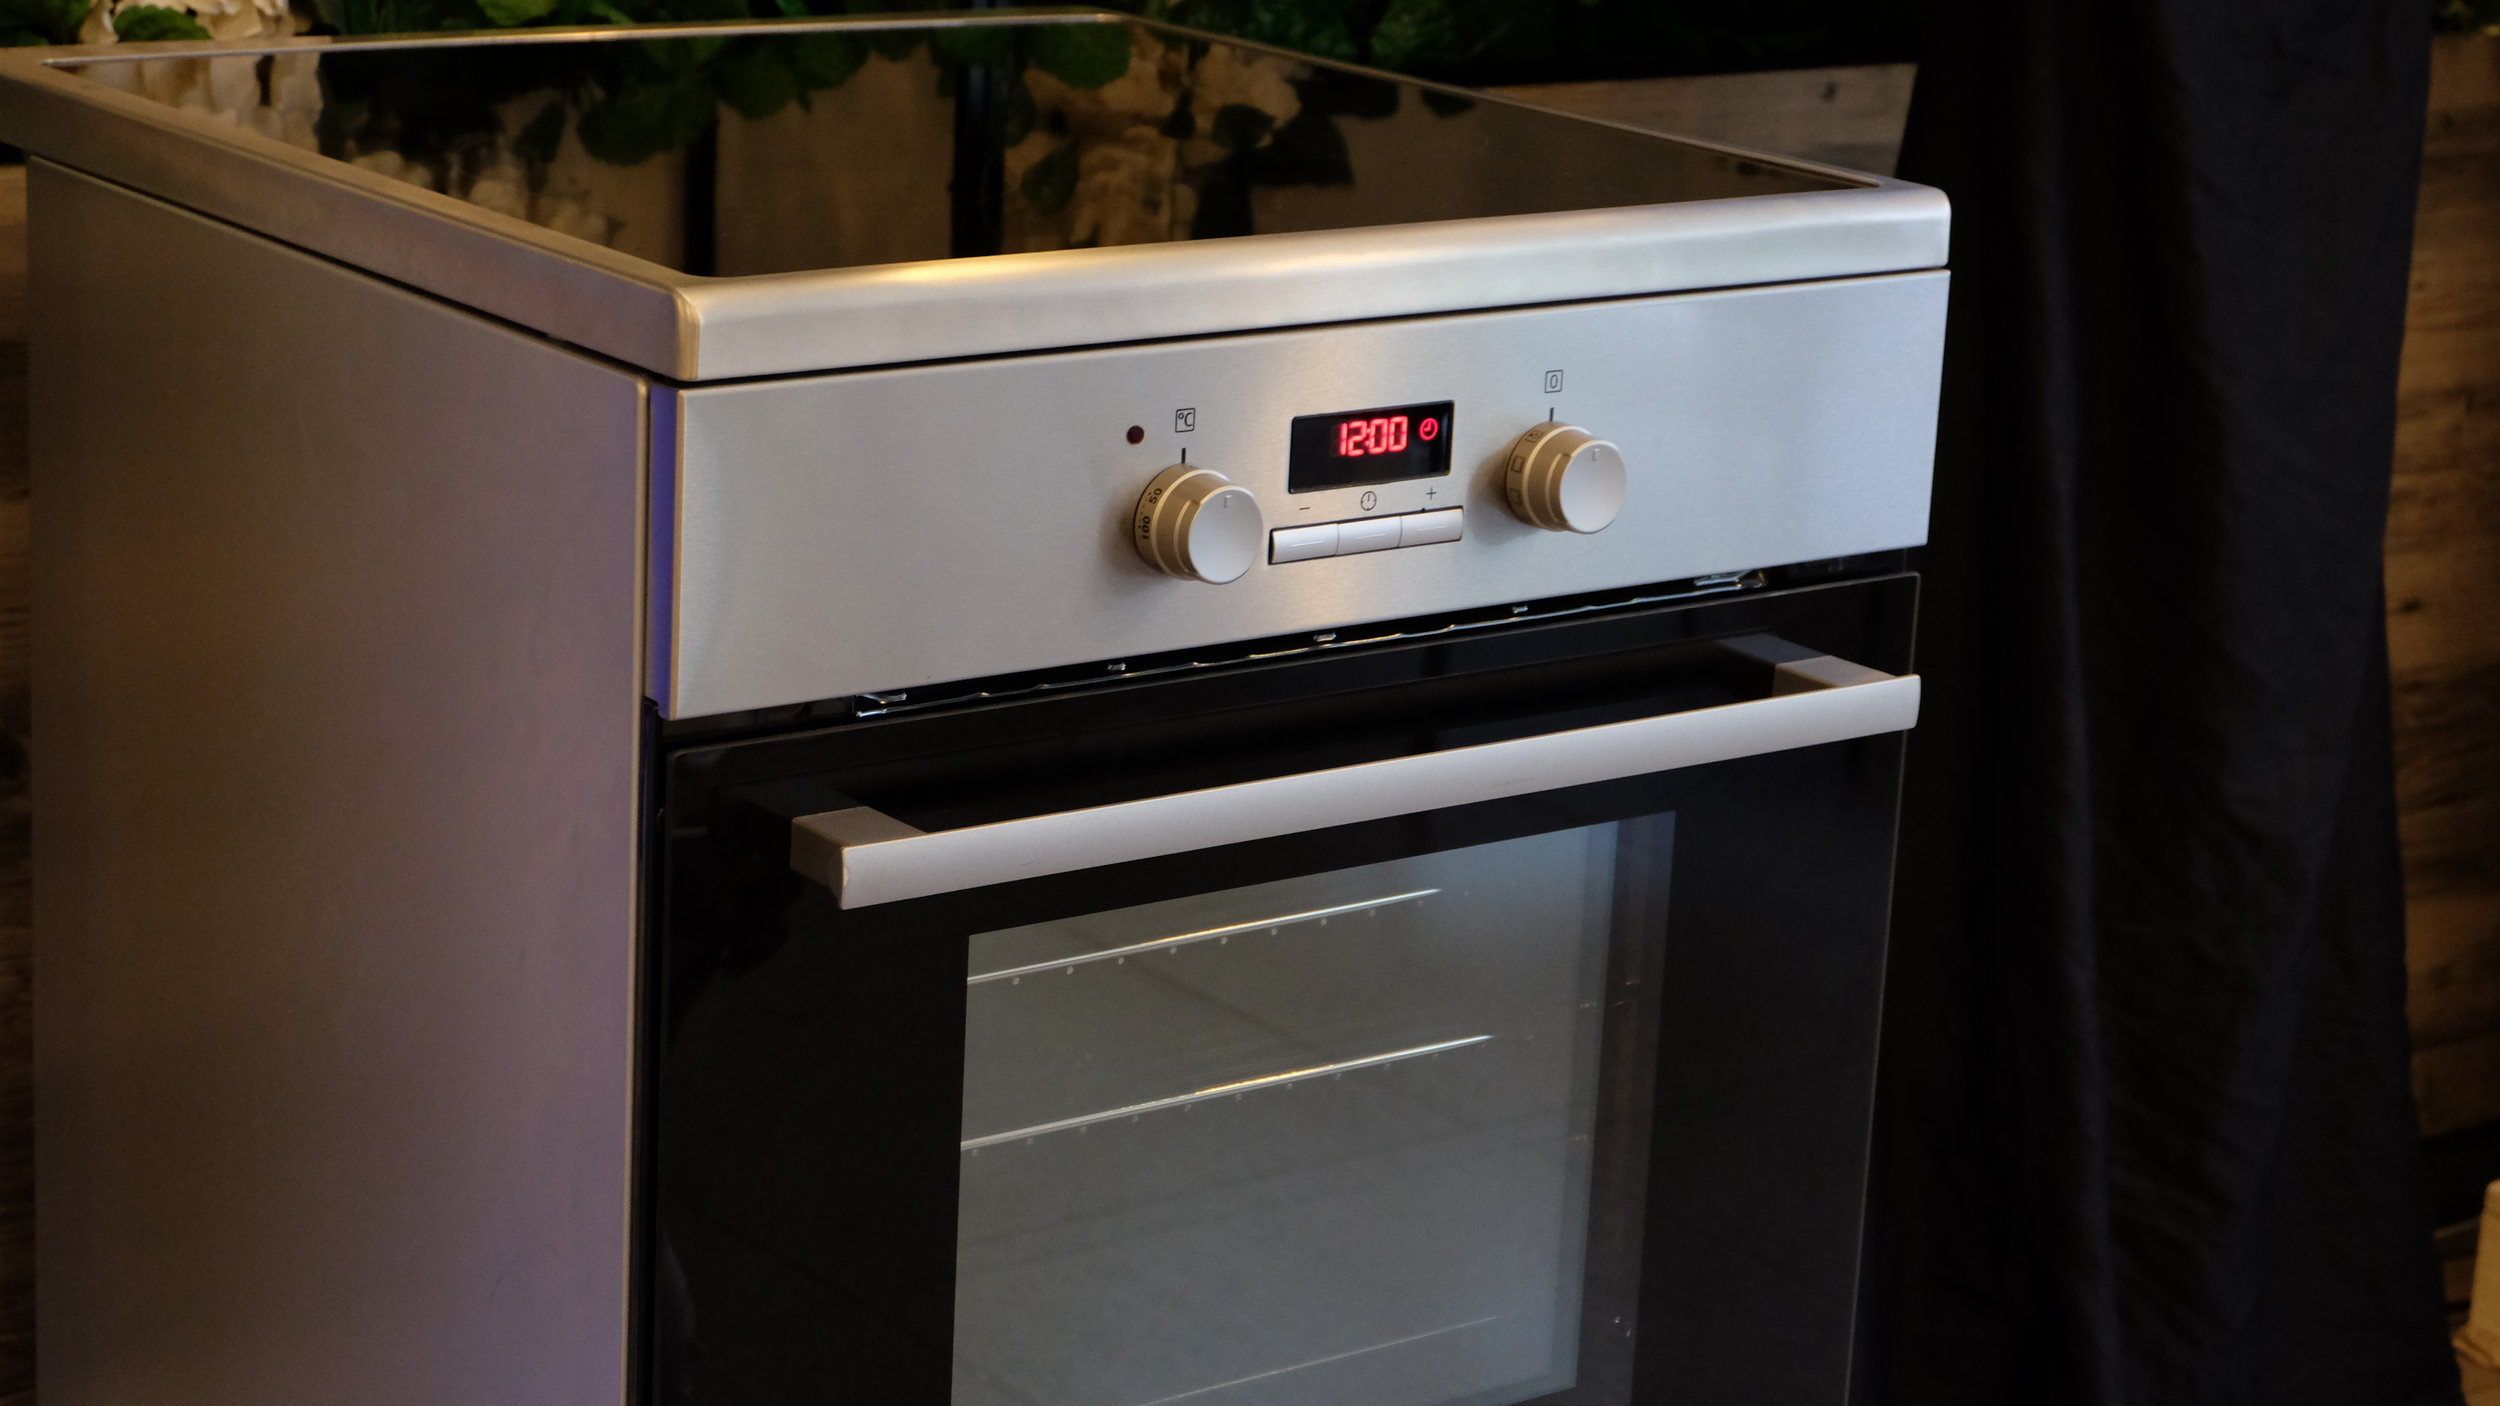 Electrolux Cooking Range with Induction Cooktop & Electric Oven gives moms the advantage and luxury of making any hearty and healthy meal in the kitchen for summer blowouts, or simple family dinners at home. It comes with the Precise Temperature Control which allows moms to go from high to low heat instantly, making sure that they never under- or overcook again.